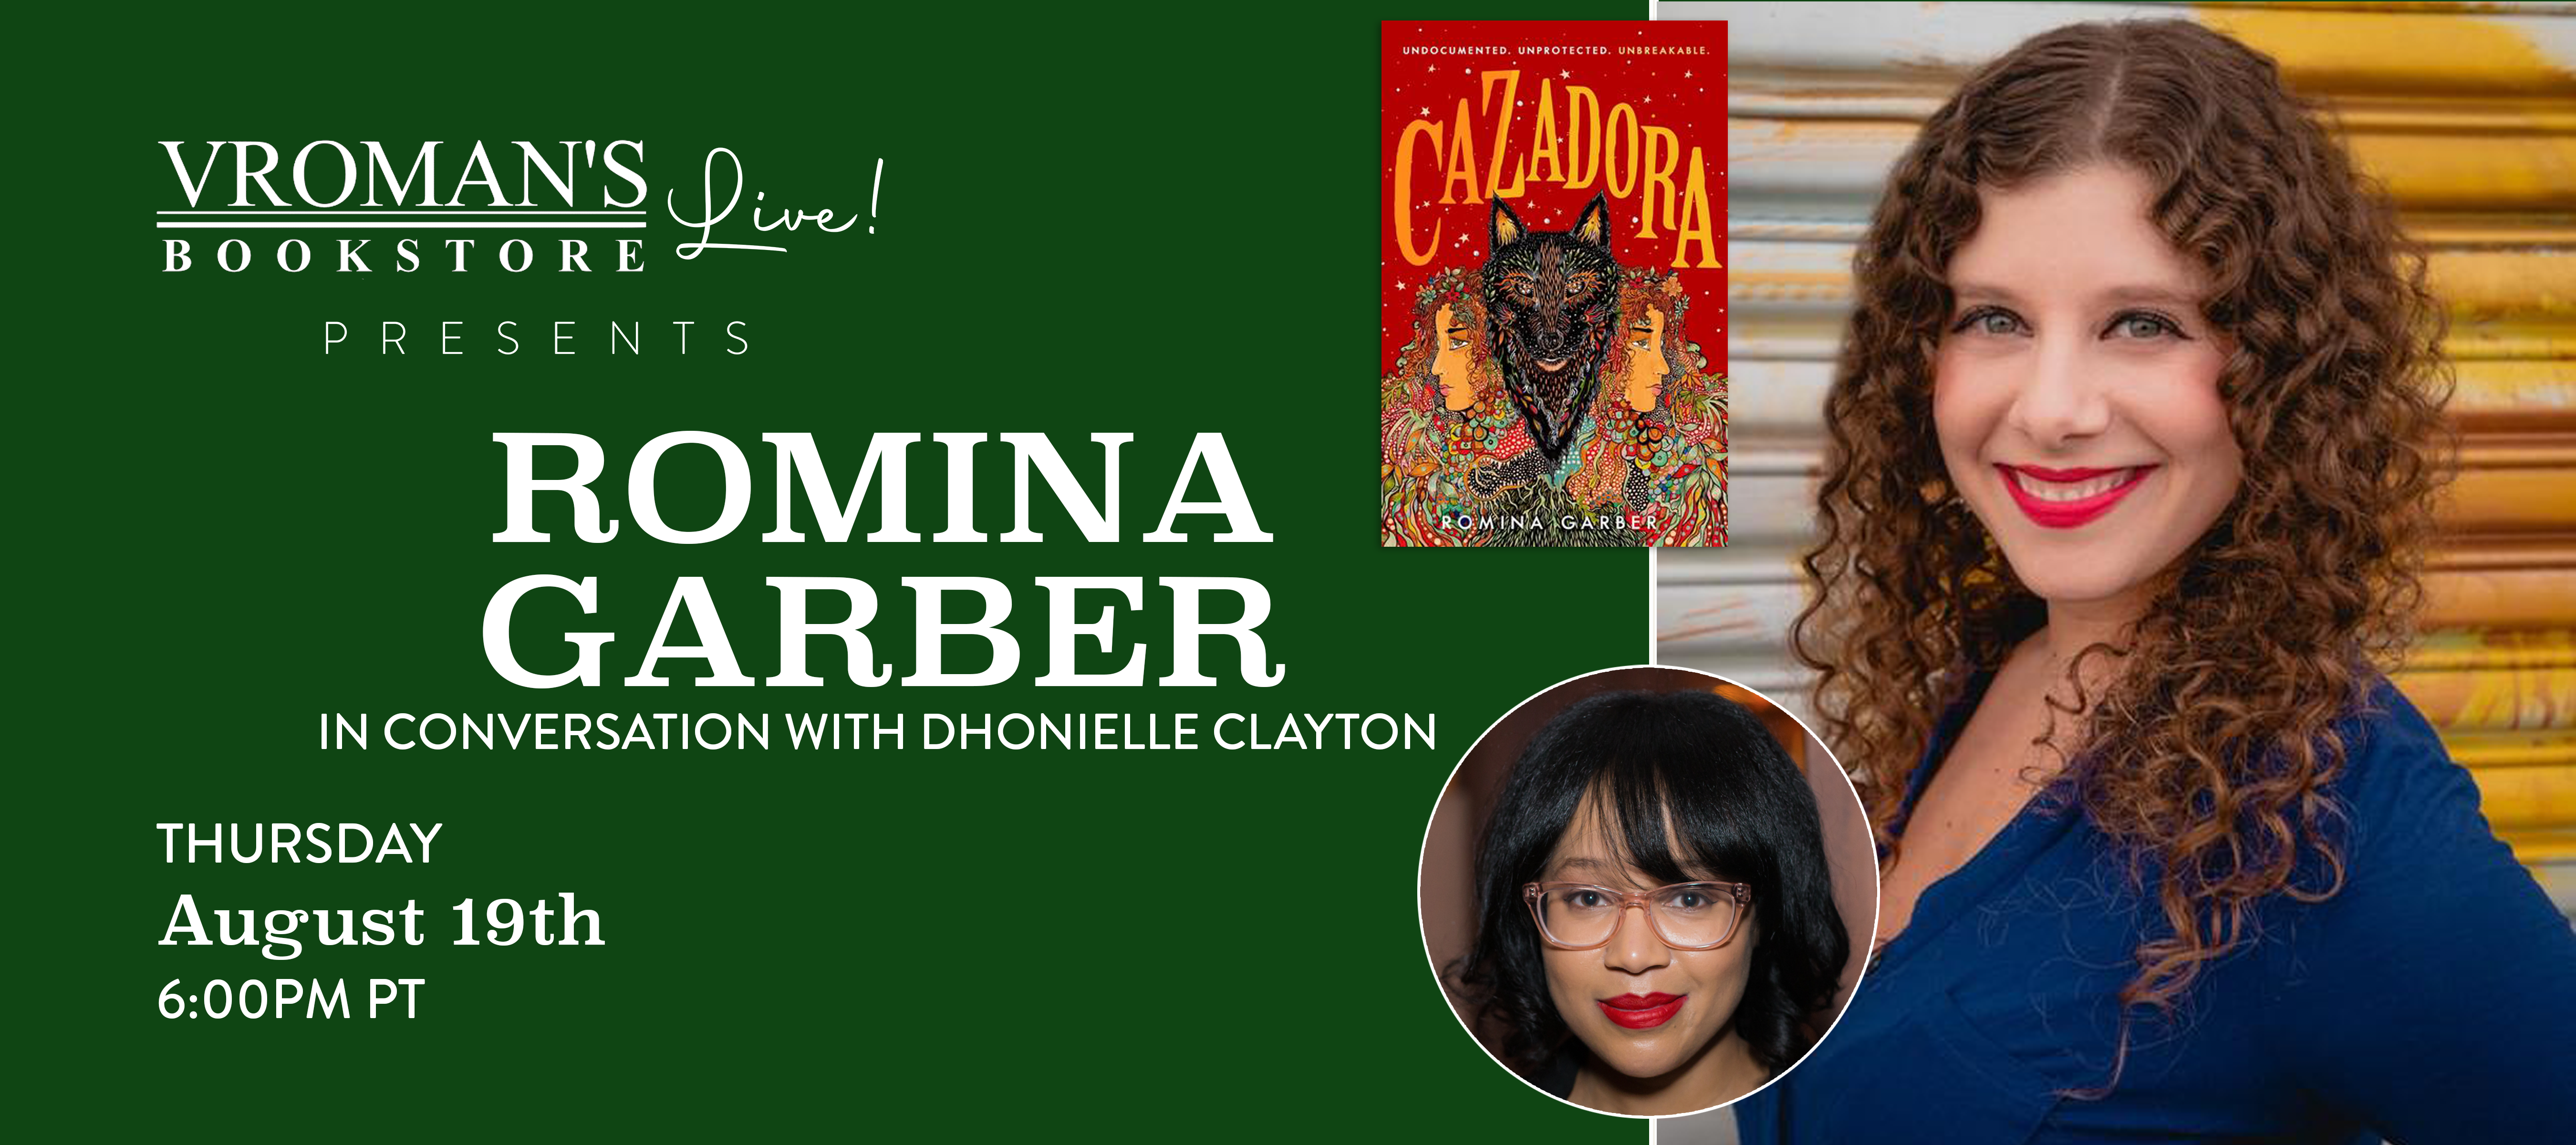 Image of green banner with details for event on Thursday, August 19, 6pm - Romina Garber, in conversation with Dhonielle Clayton, discusses Cazadora